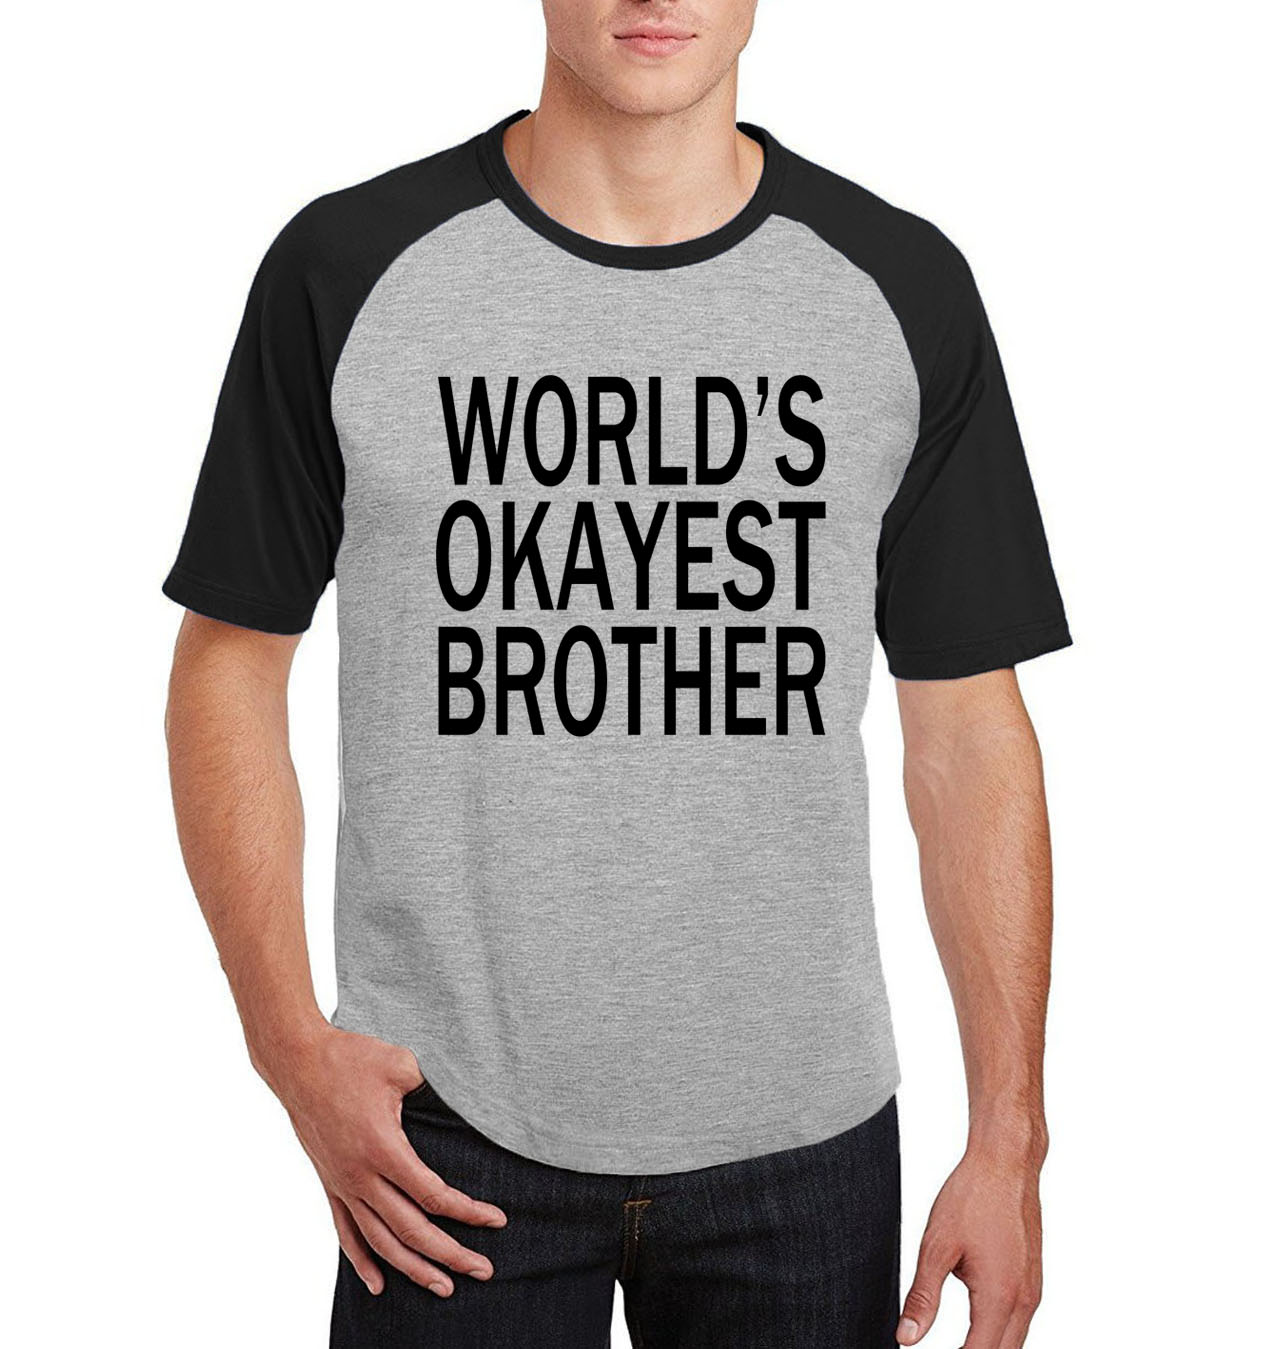 2019 summer o-neck raglan t shirt world's okayest brother letter print brand clothing men cotton short sleeve fitness camisetas